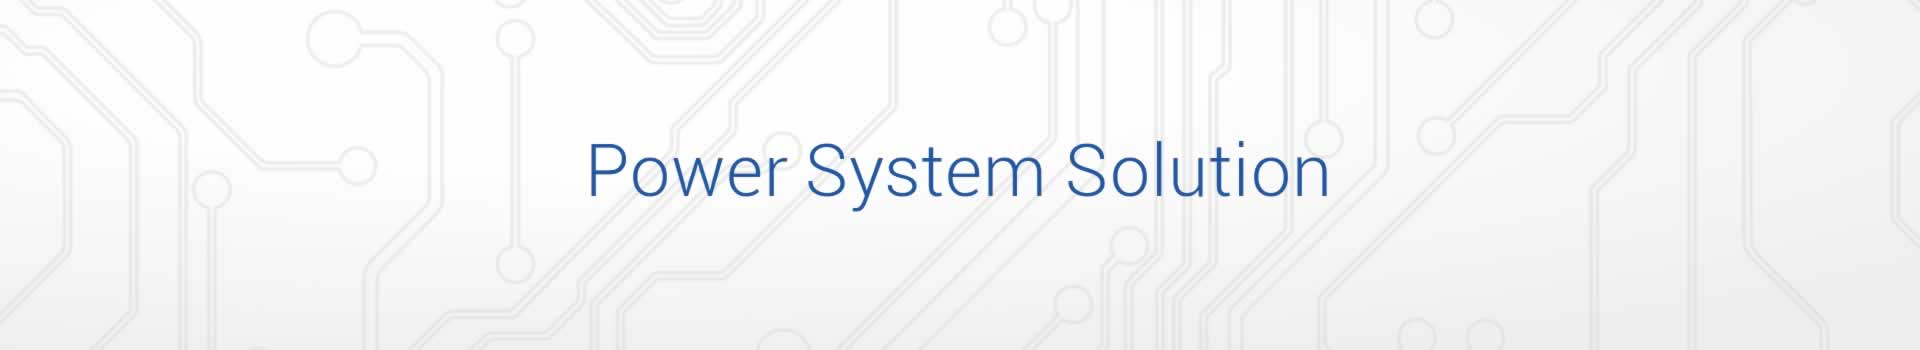 Power System Solution